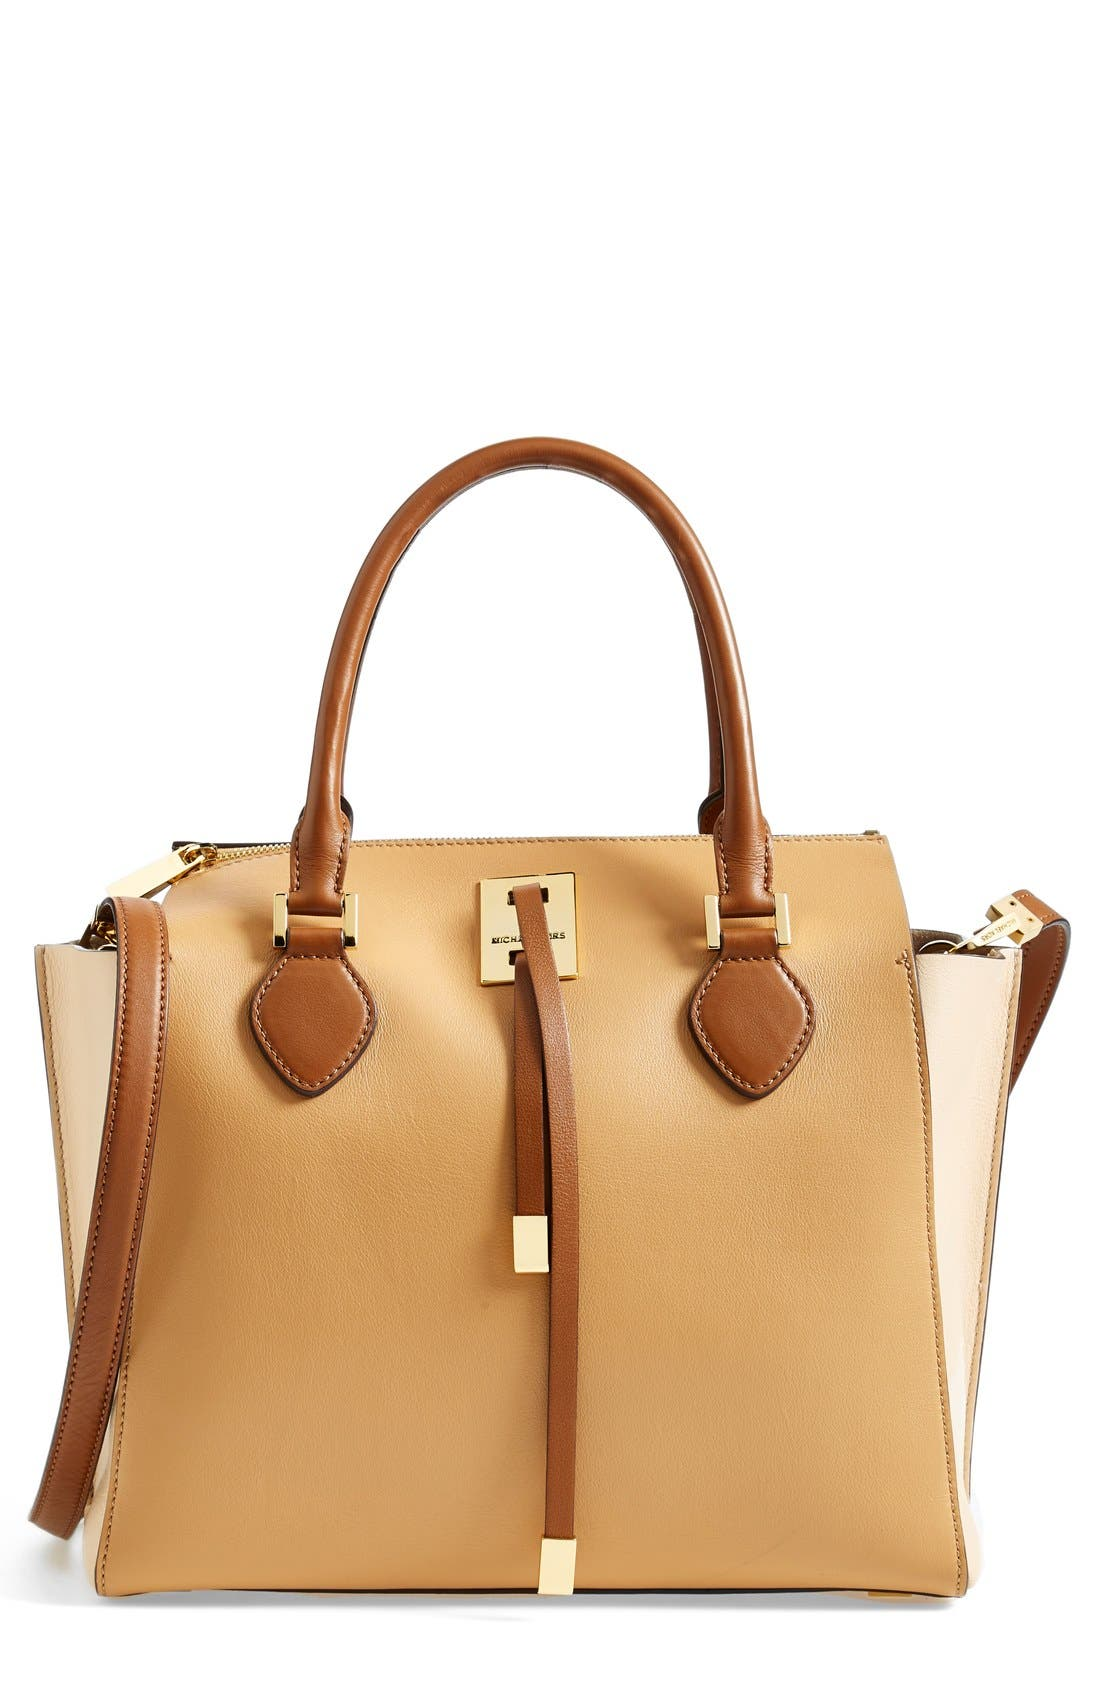 Main Image - Michael Kors 'Miranda' Colorblock Leather Satchel